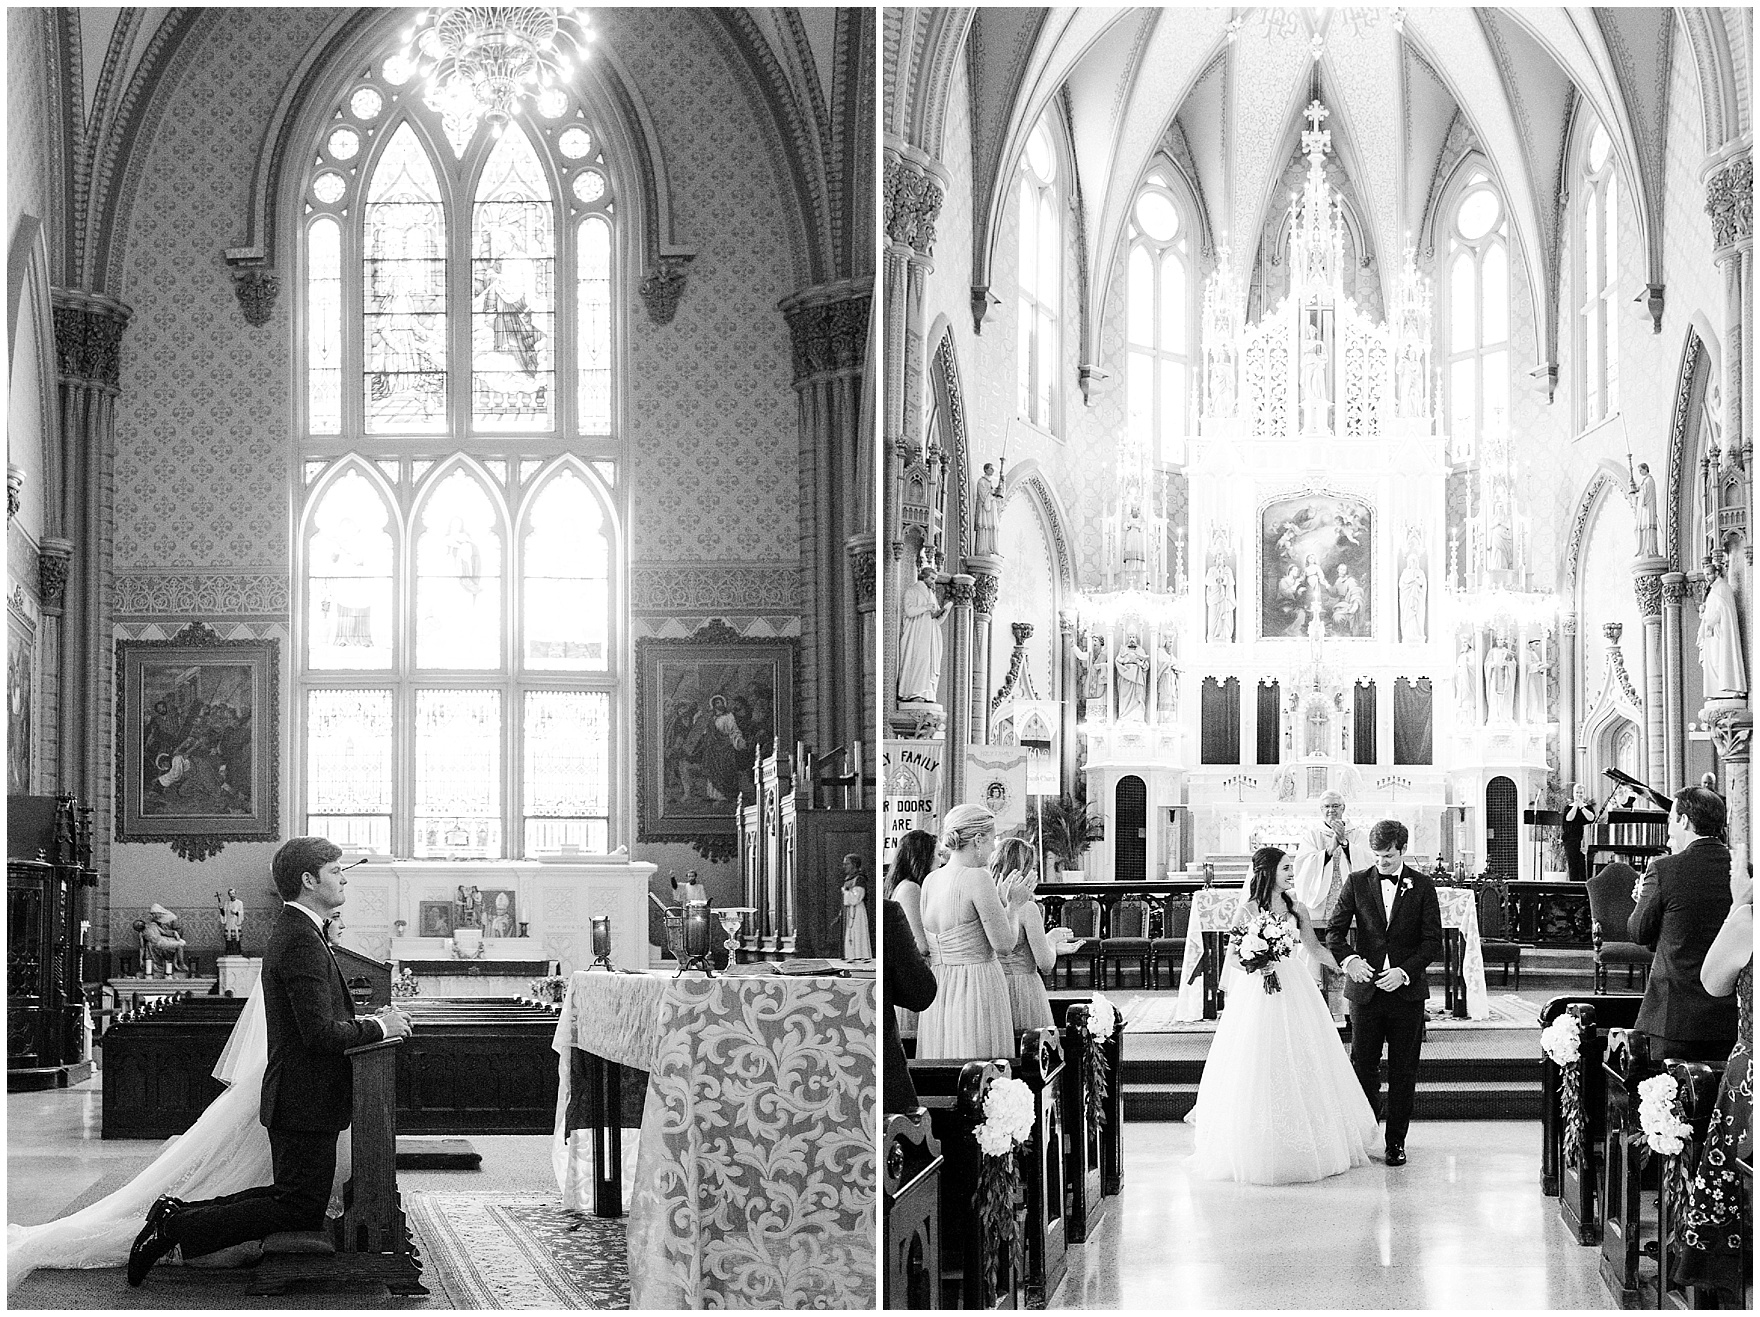 The newly married couple exits Chicago's historic Holy Family Church, site of the ceremony for a Butterfield Country Club wedding.